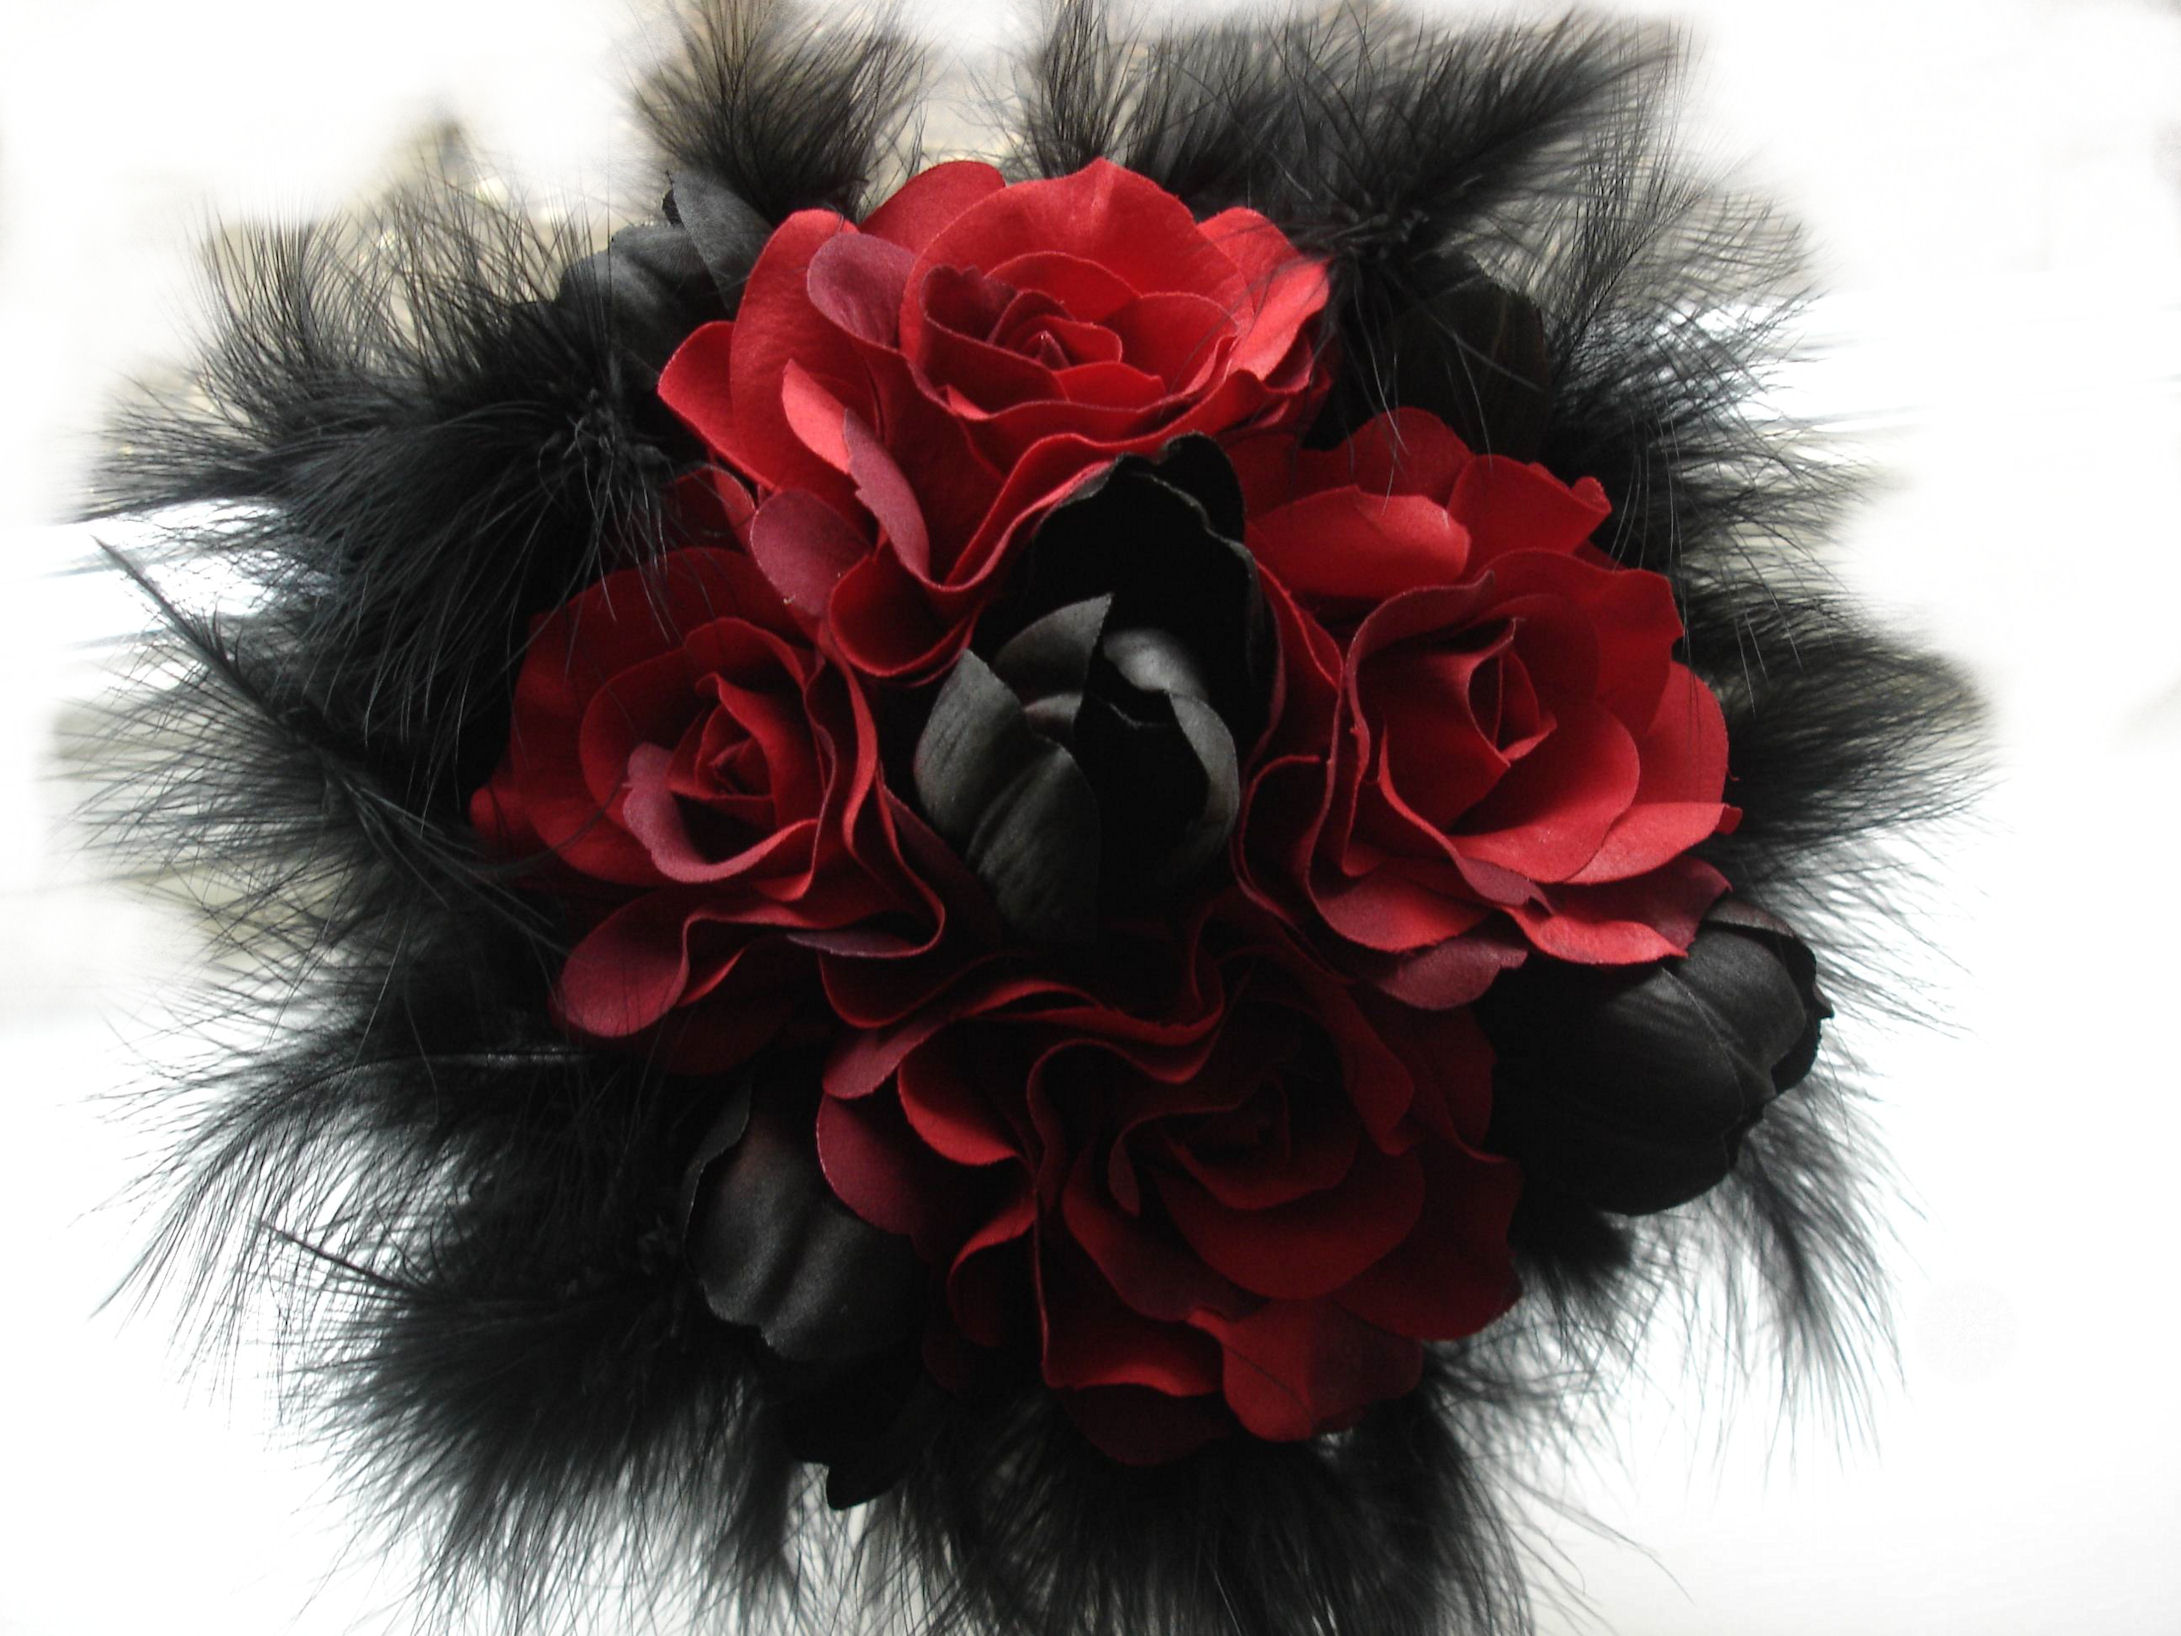 Gothic Rose Red Black Flower Beautiful Hd Wallpaper